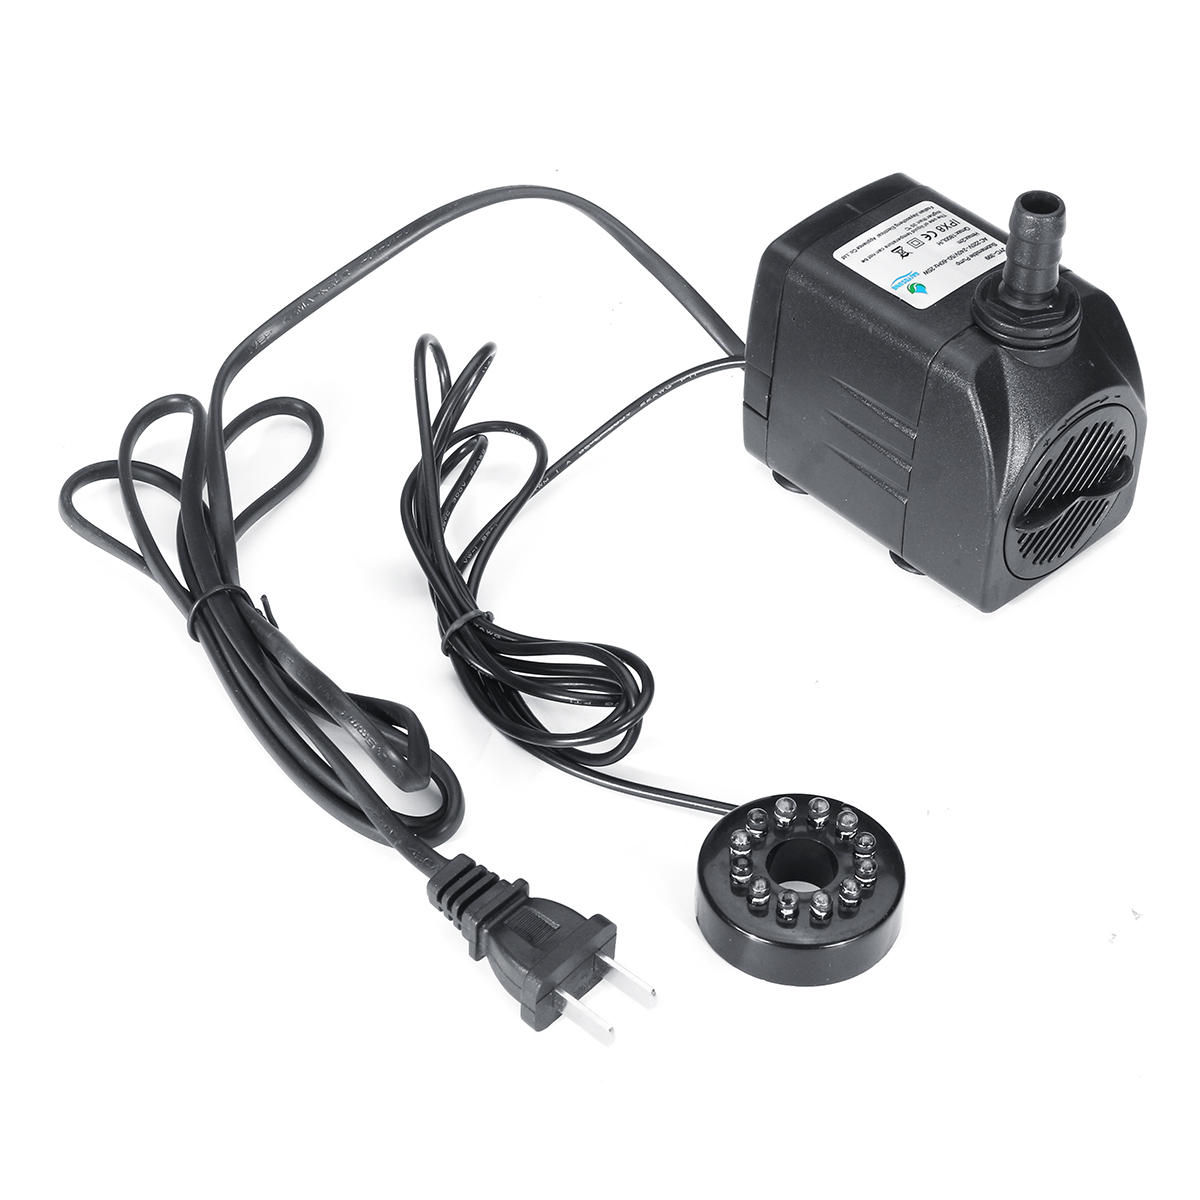 DC 24V Aquarium Fish Tank Pond Submersible Water Pump Controller Flow Adjustable